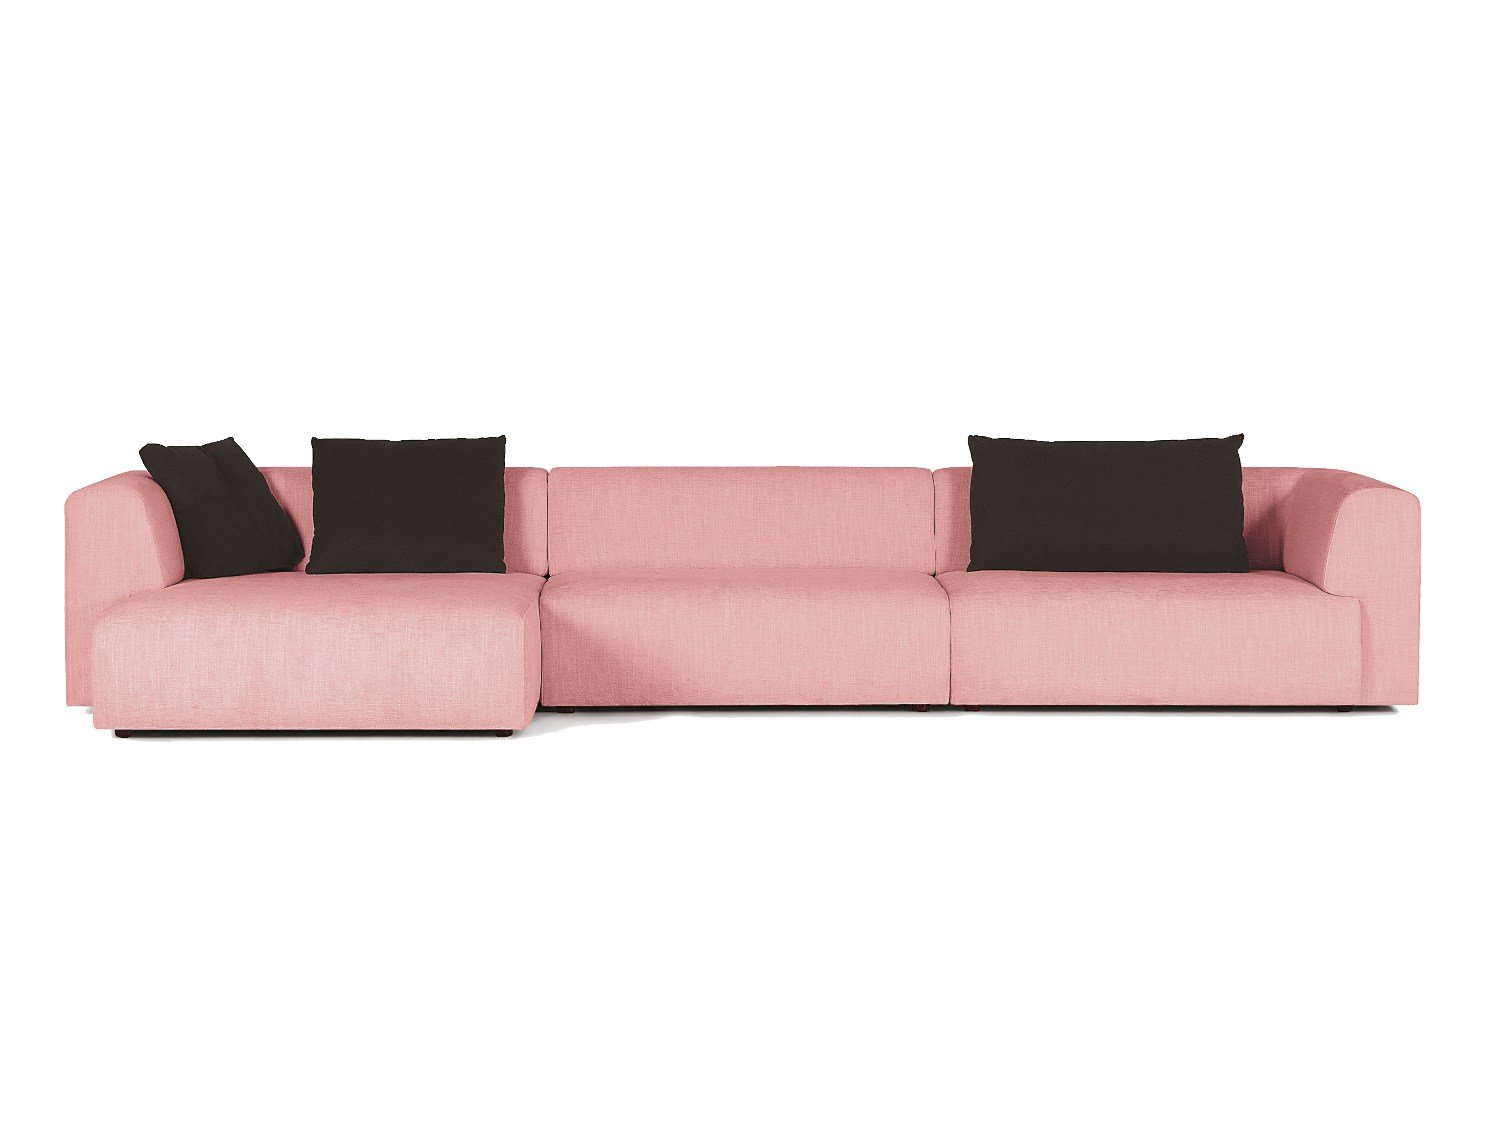 duo sofa with chaise longue by sancal design rafa garc a. Black Bedroom Furniture Sets. Home Design Ideas